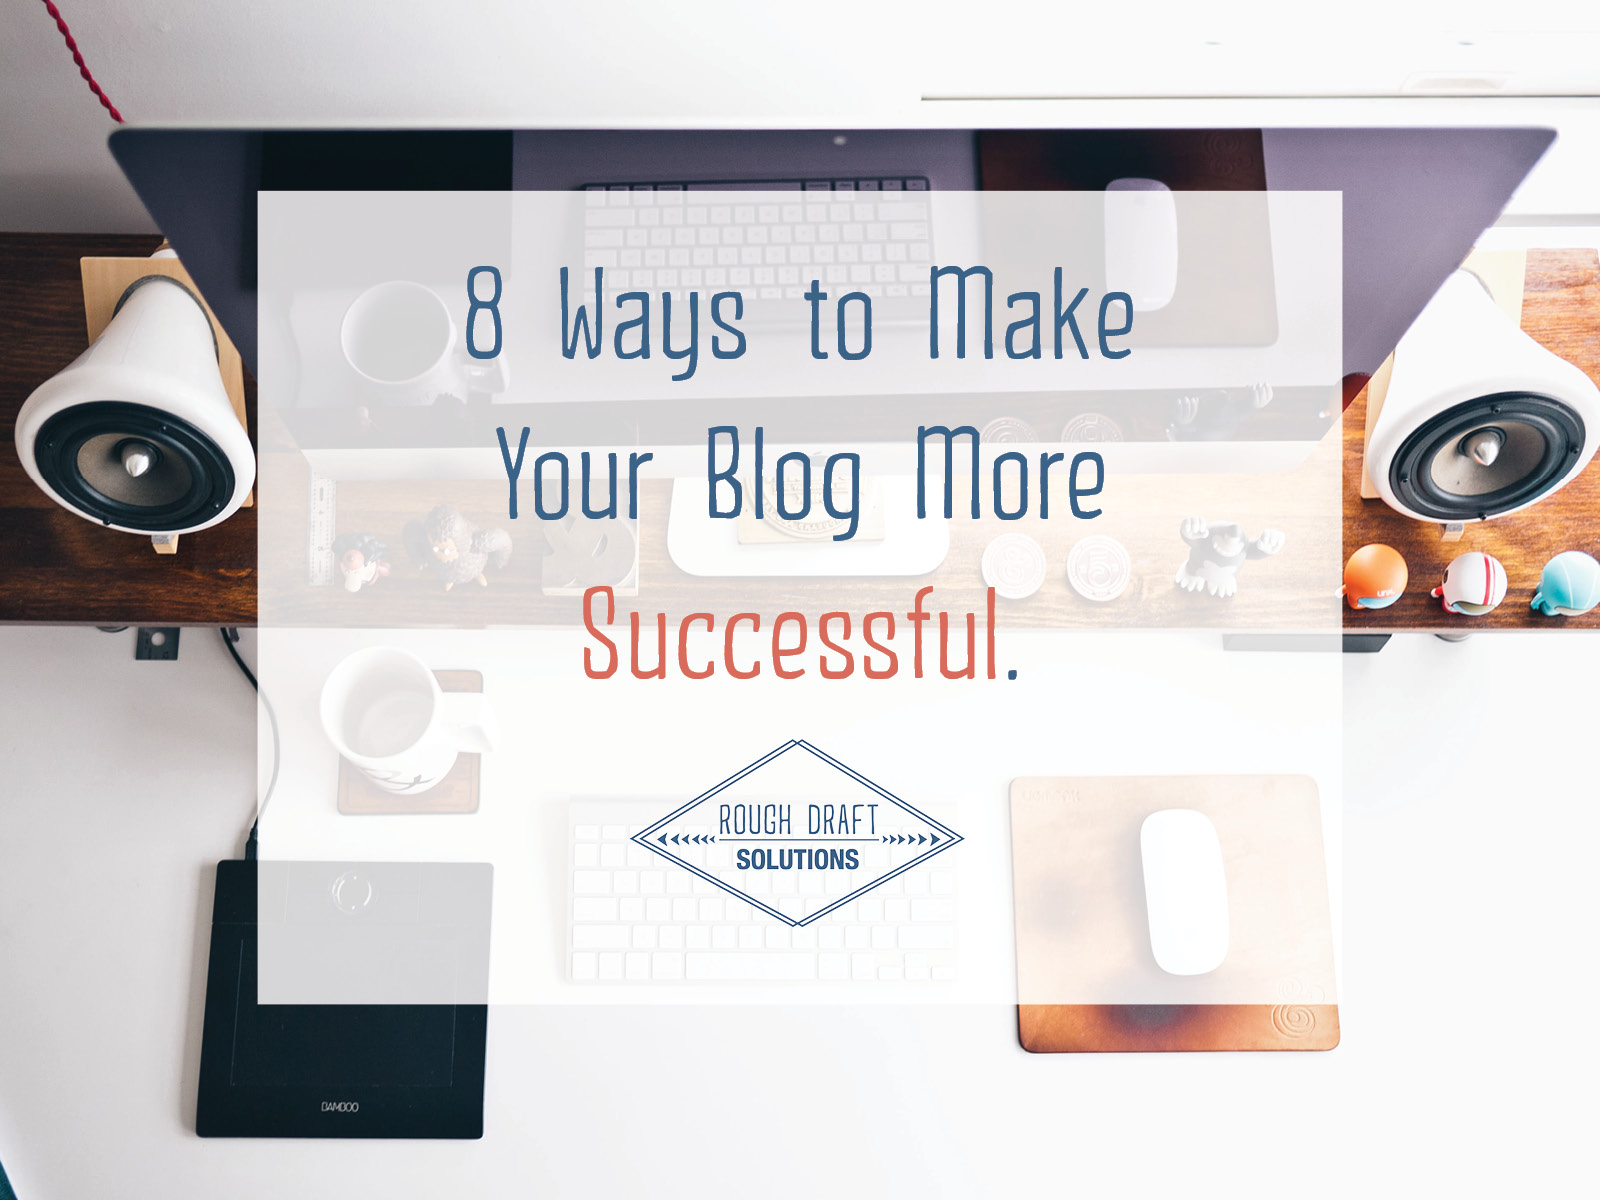 8 Ways to Make Your Blog More Successful